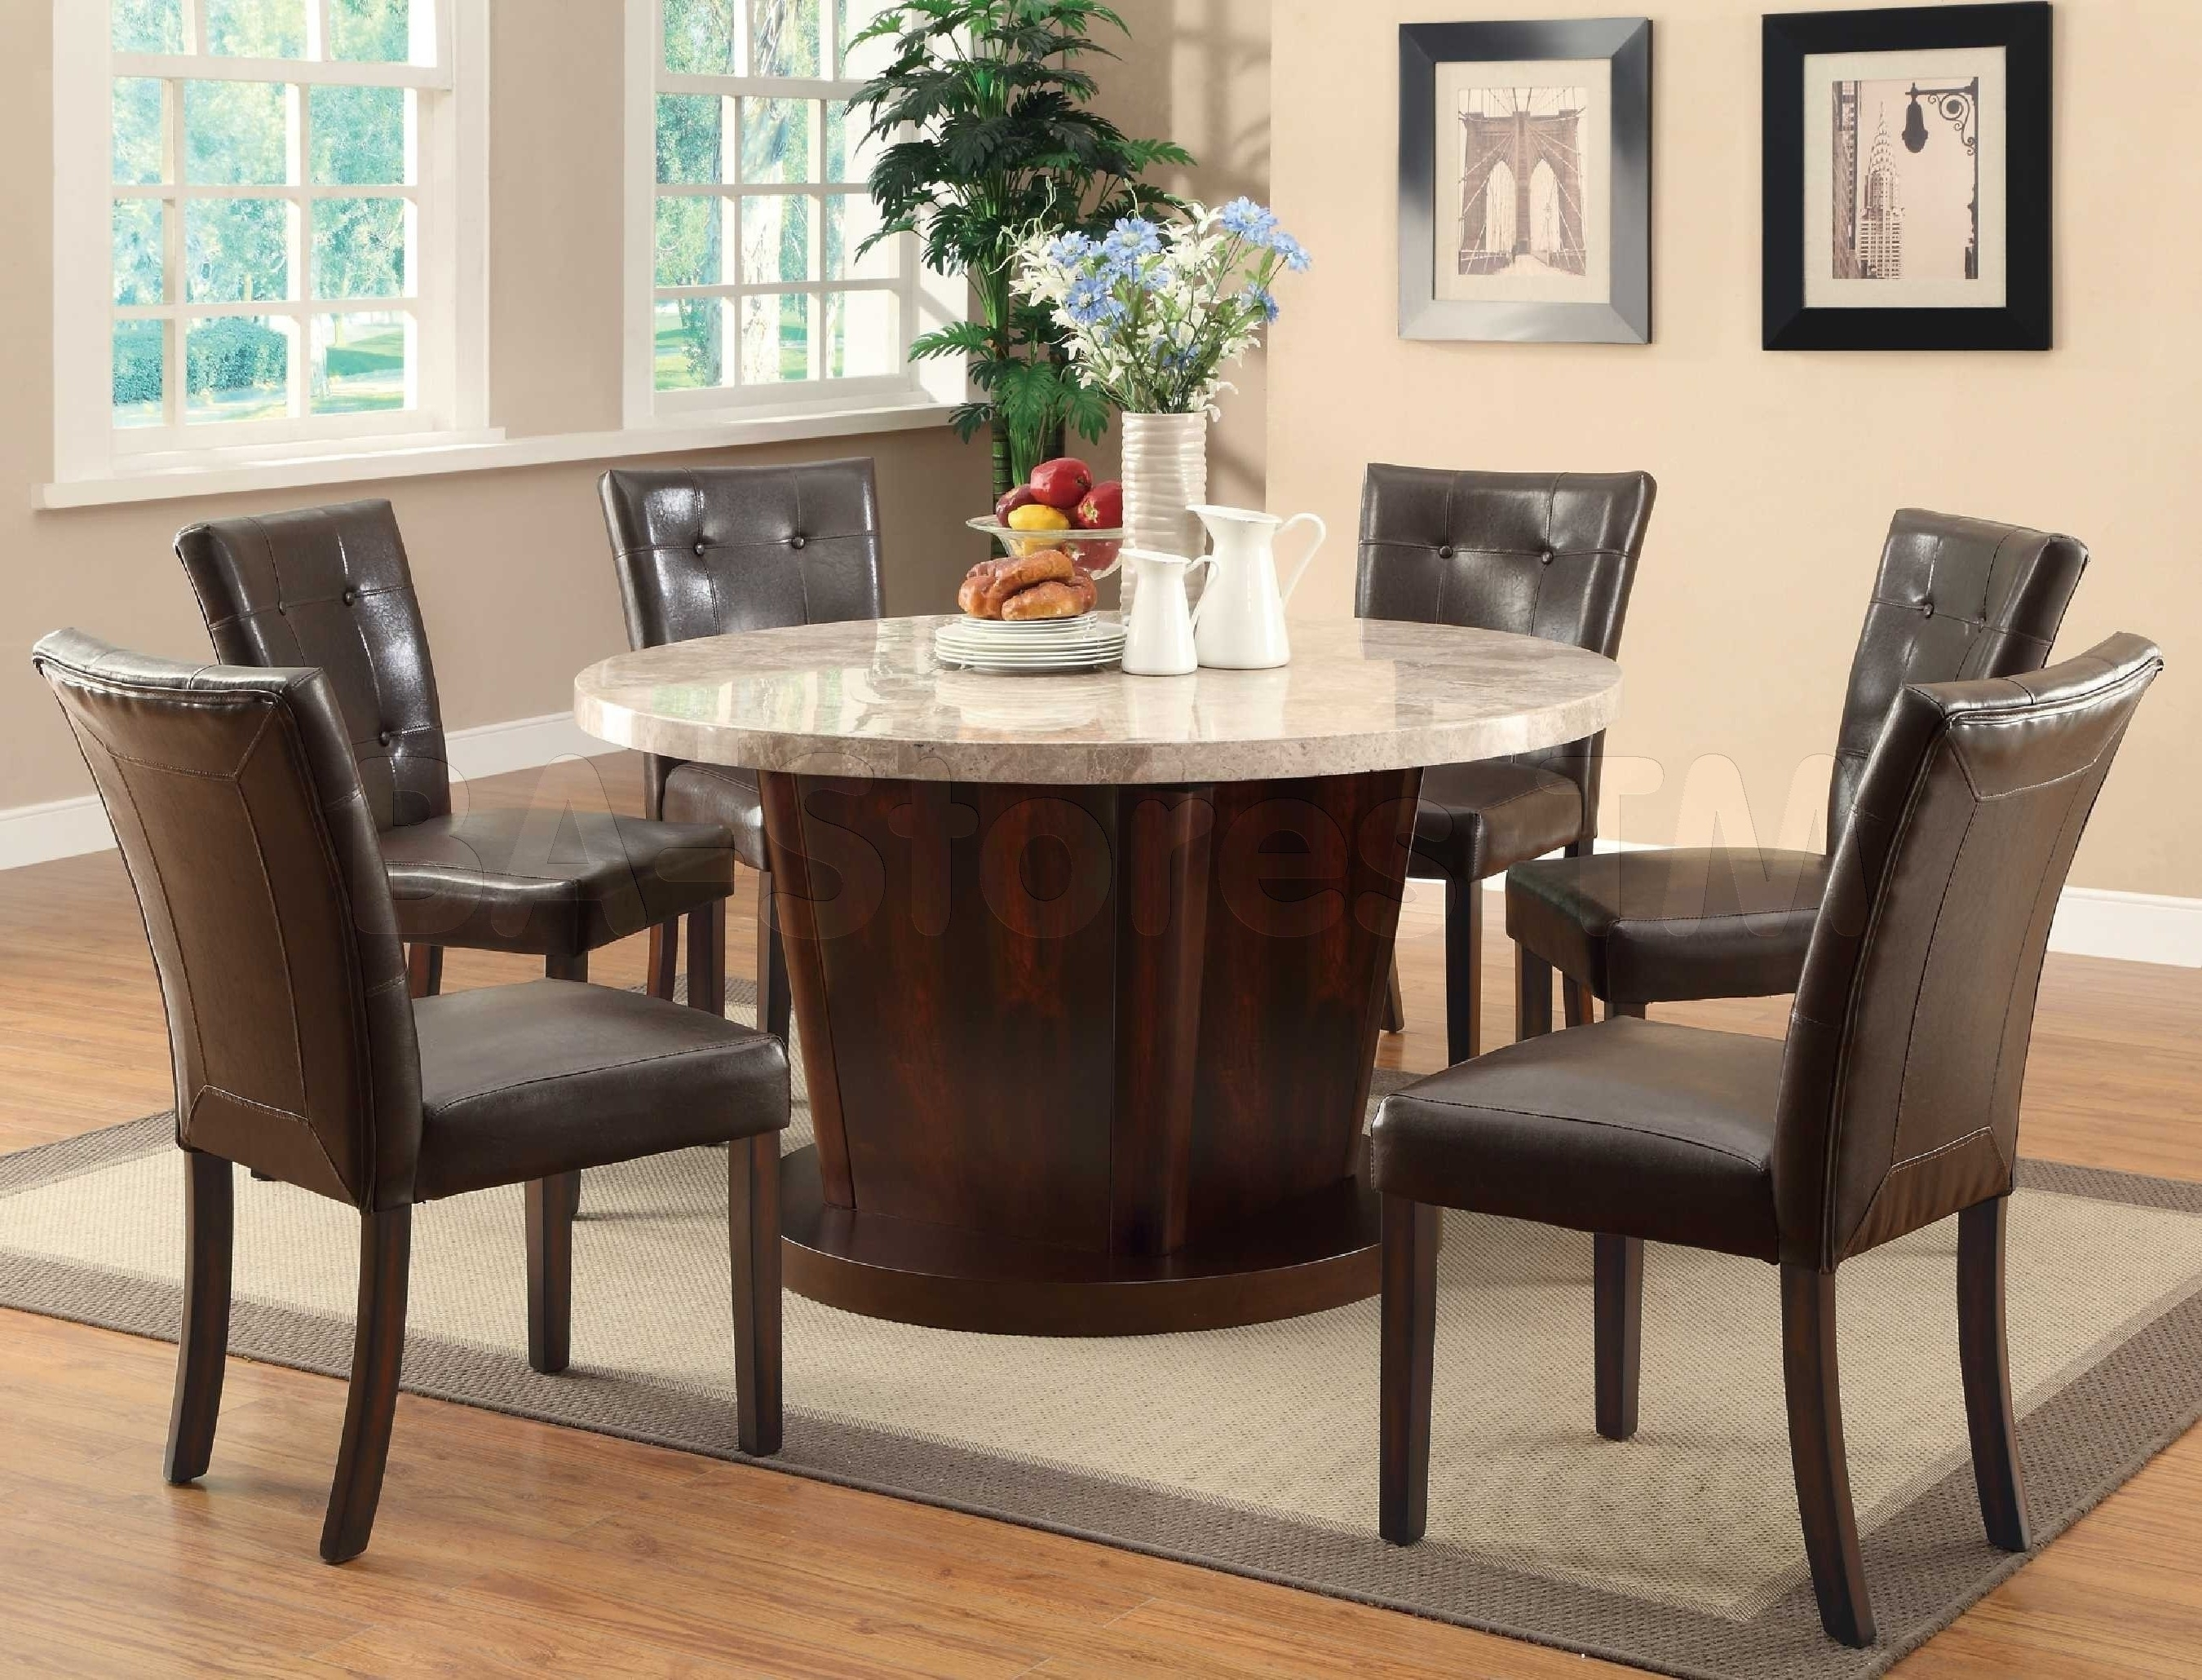 Most Recently Released 26 Elegant Dining Table With Leather Seats – Welovedandelion Intended For Dark Wooden Dining Tables (View 19 of 25)